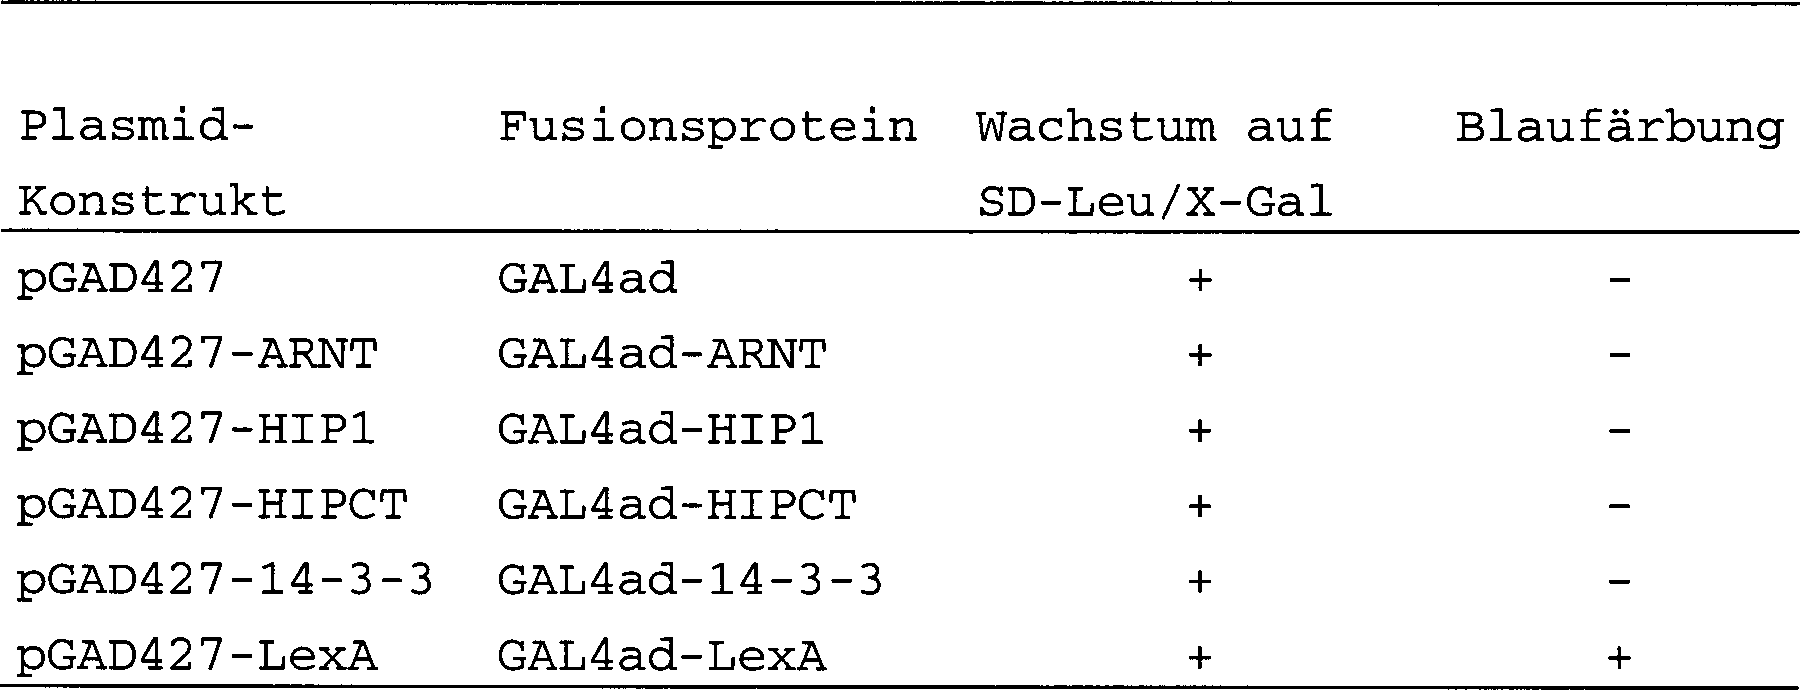 DE69824757T2 - Identification and characterization of